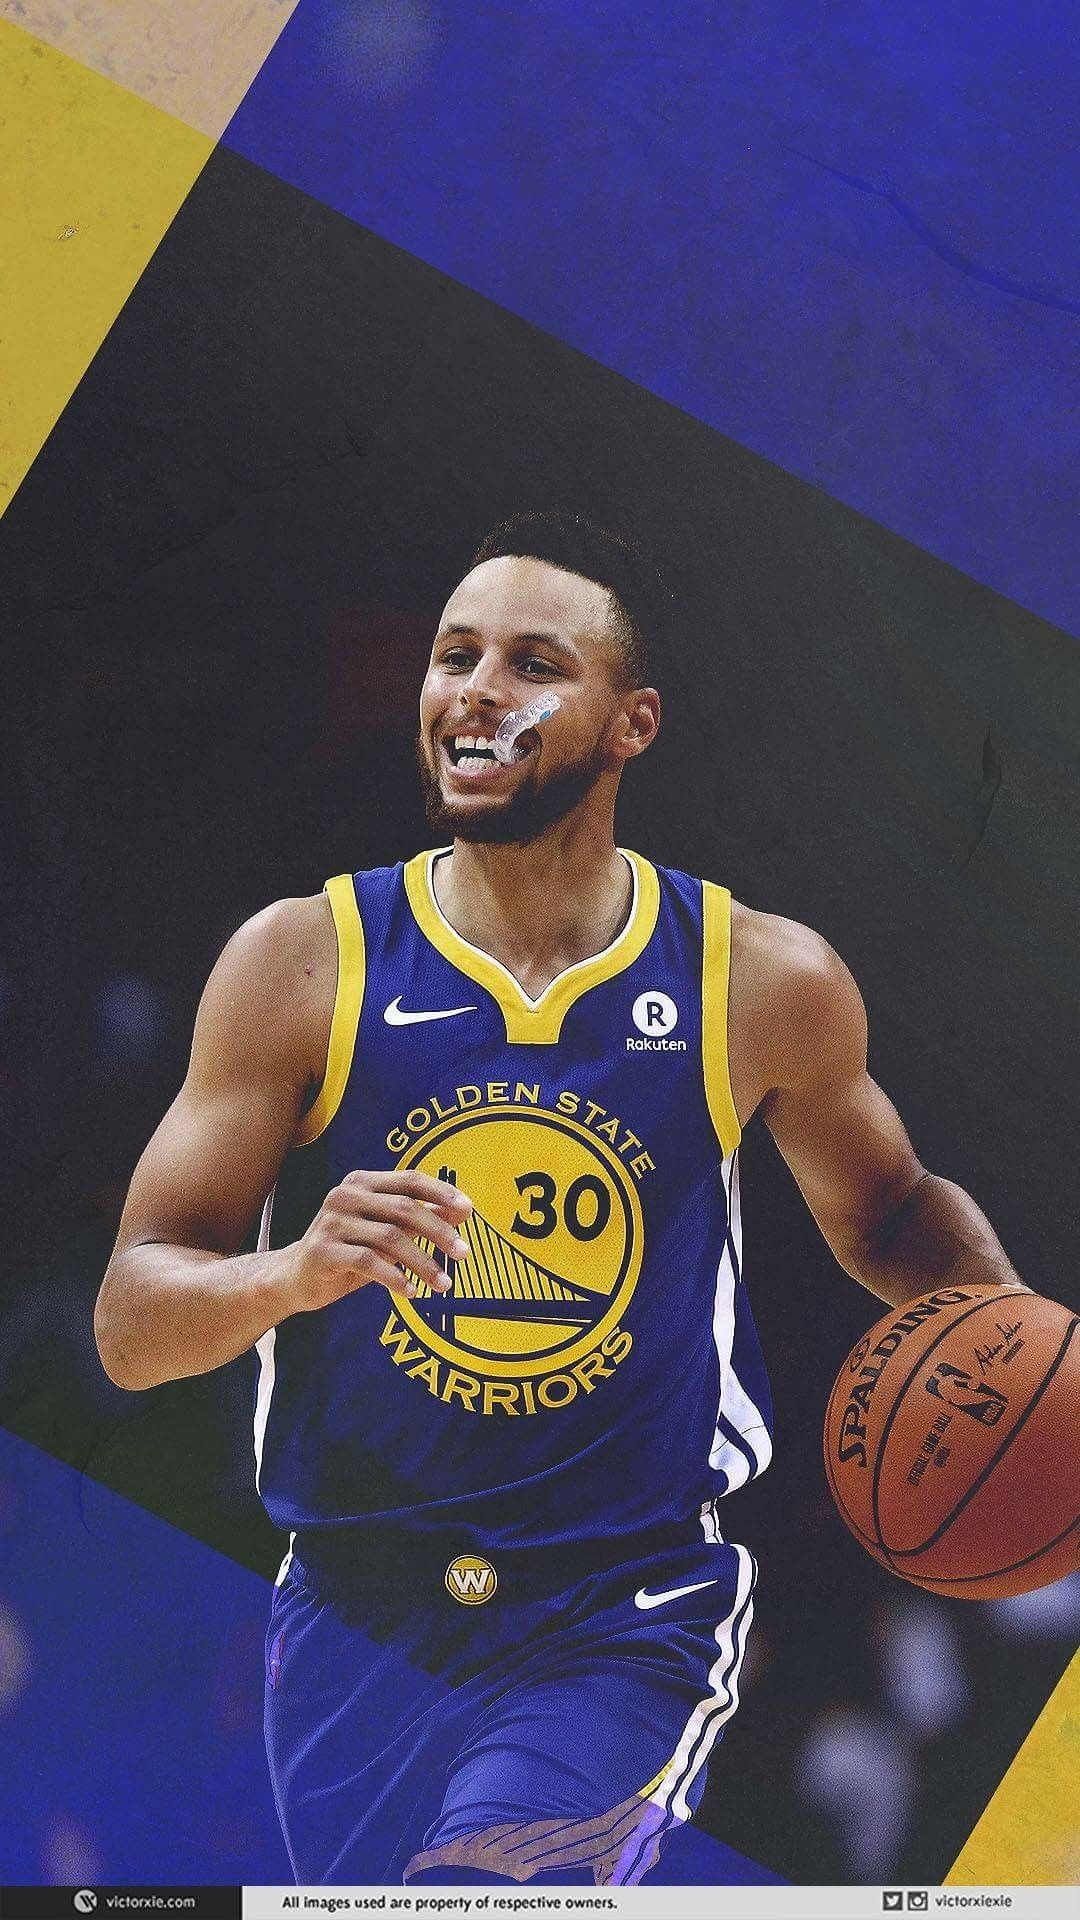 Steph Curry Wallpapers Top Free Steph Curry Backgrounds Wallpaperaccess